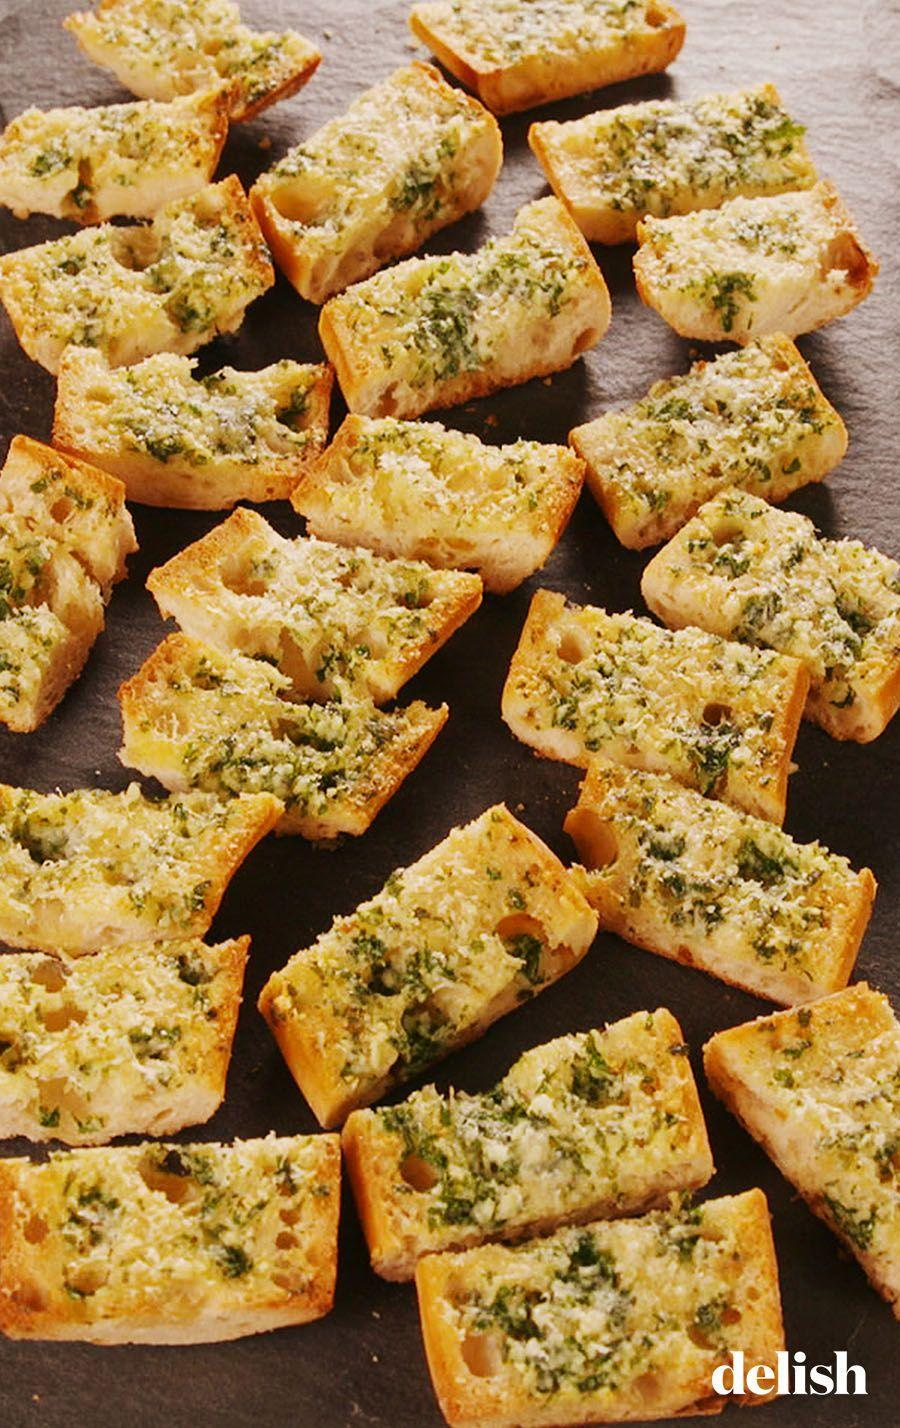 "<p>The secret to really good garlic bread is to keep it simple. And to use a lot of garlic—4 cloves for one loaf! </p><p>Get the recipe from <a href=""https://www.delish.com/cooking/recipe-ideas/a24803098/easy-garlic-bread-recipe/"" rel=""nofollow noopener"" target=""_blank"" data-ylk=""slk:Delish"" class=""link rapid-noclick-resp"">Delish</a>.</p>"